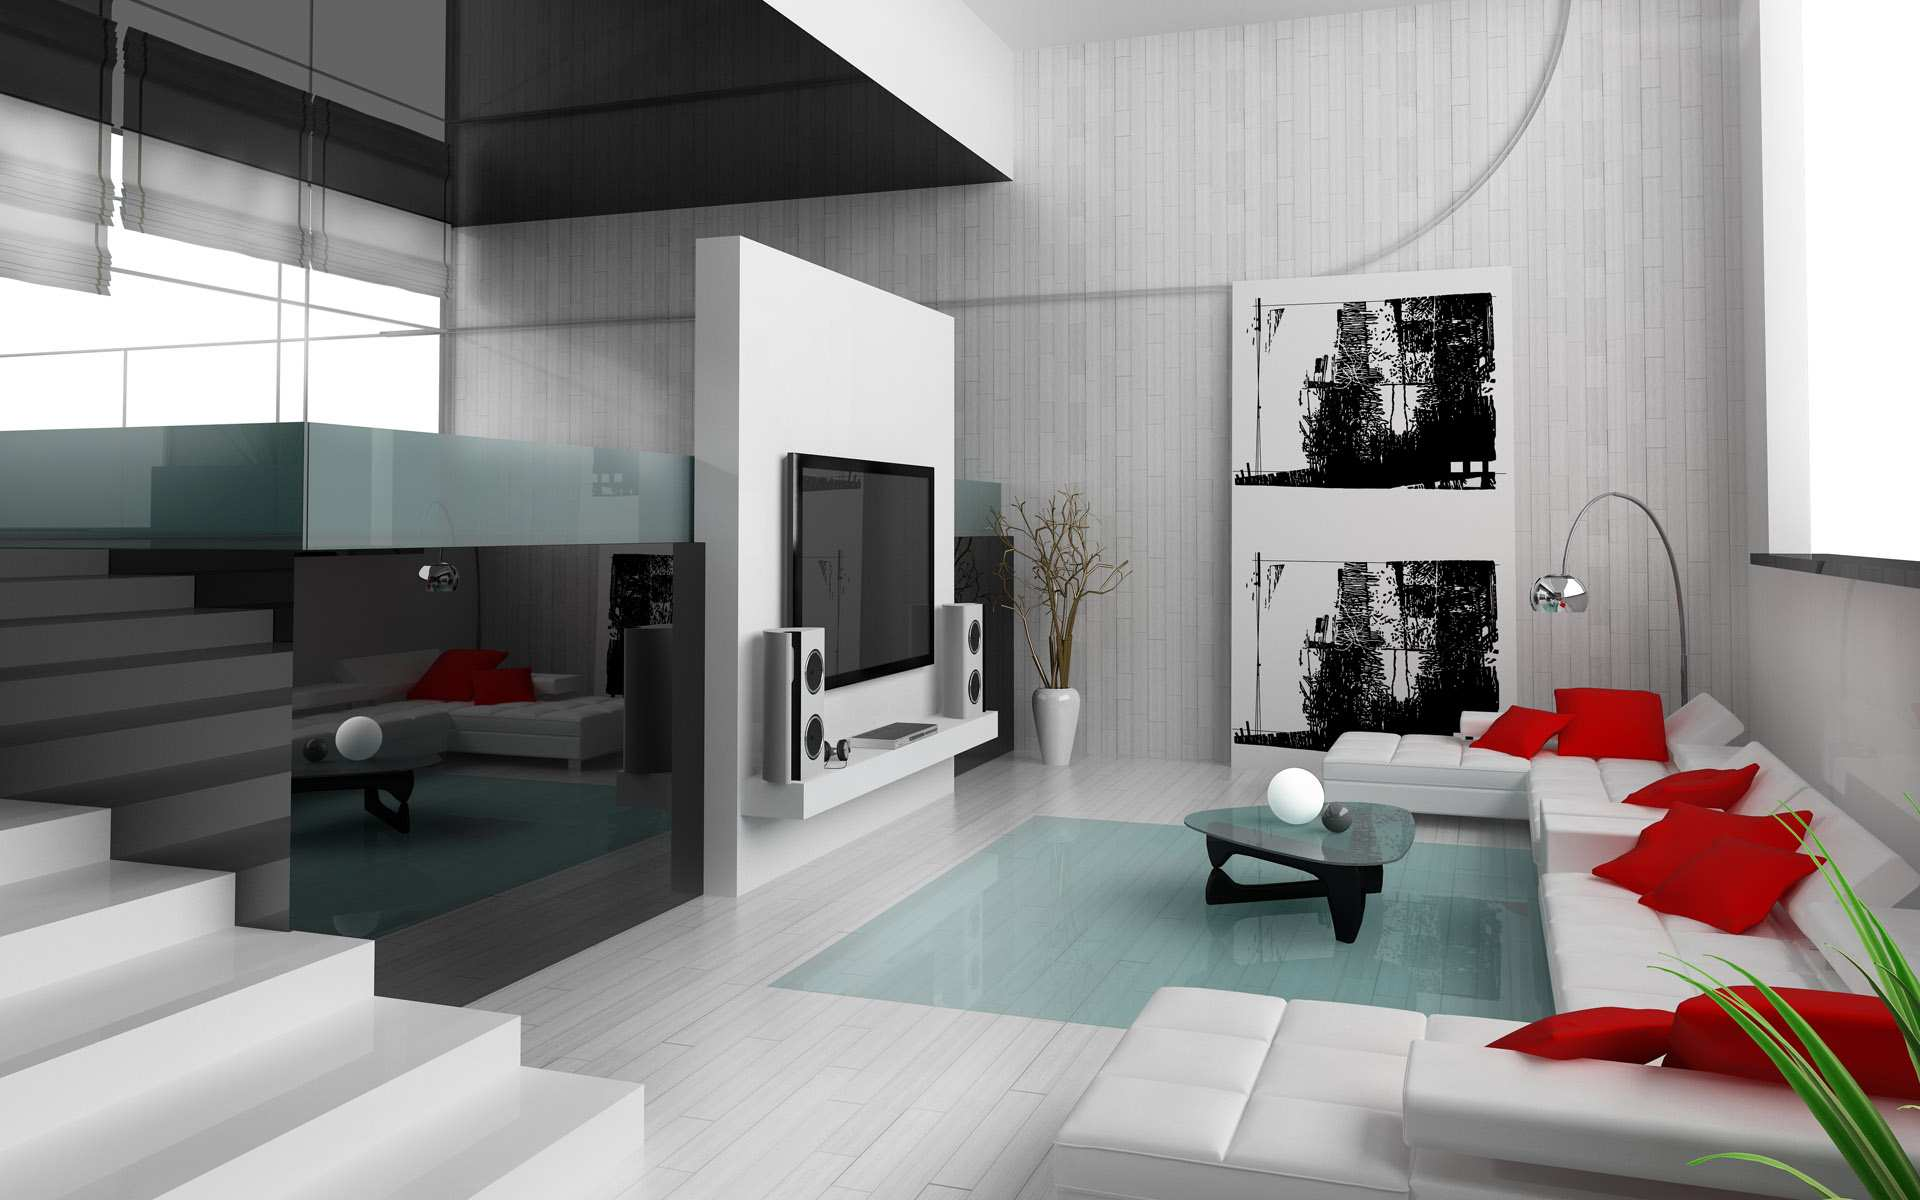 23 modern interior design ideas for the perfect home godfather style - Interior design styles ...